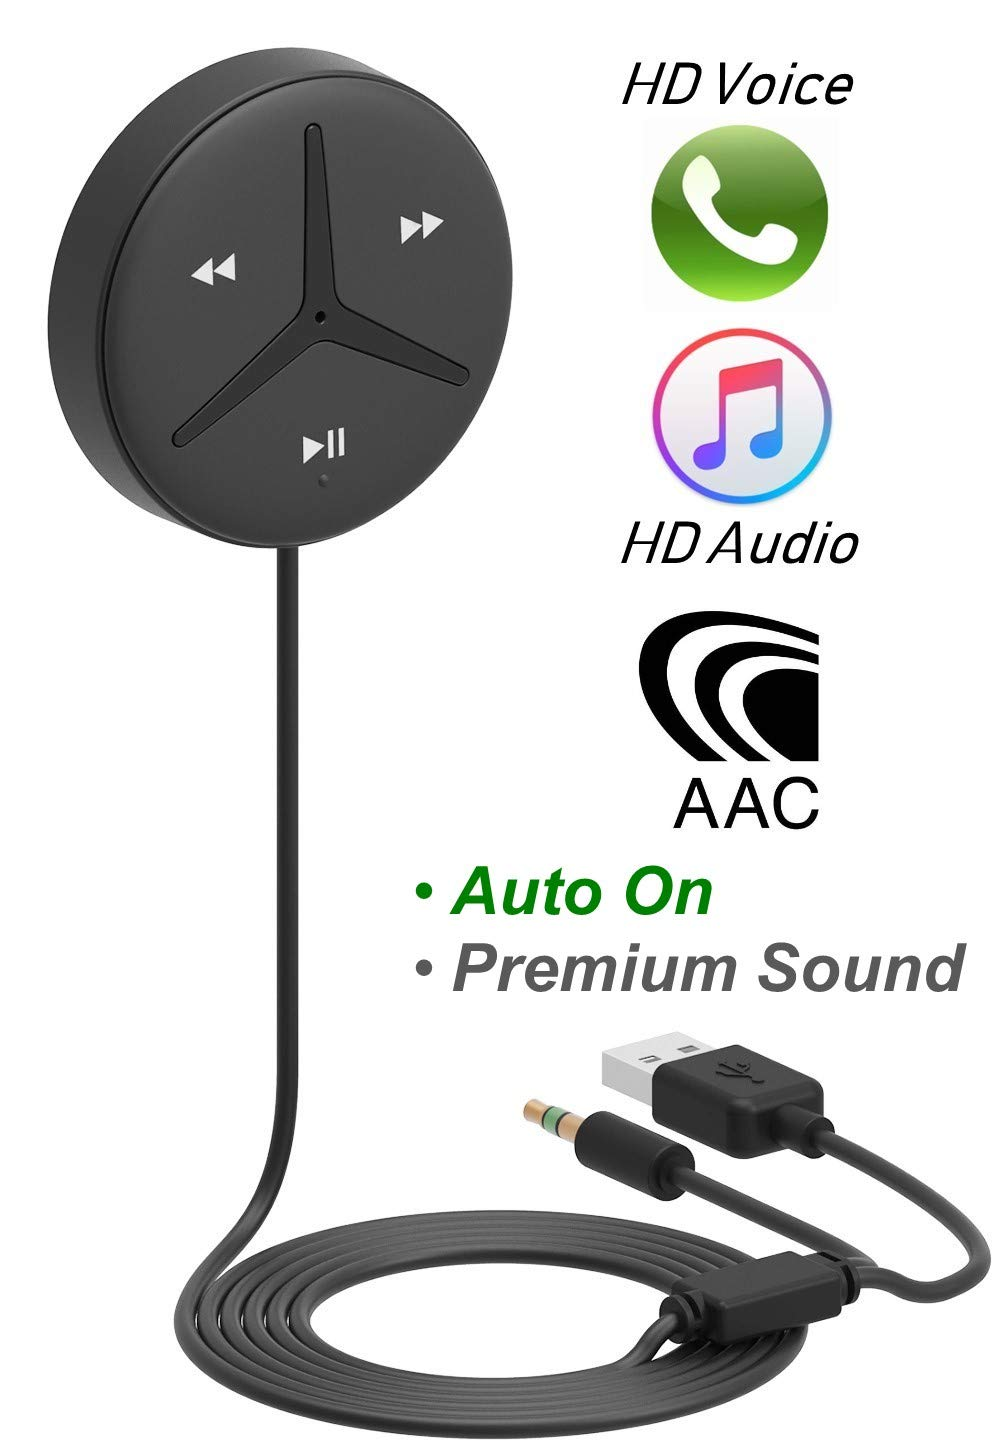 [2019 All-New] Aston SoundTek A1+,Excellent Sound,Support AAC Codec, Auto On,Aux Bluetooth Car Kits,Bluetooth Receiver,Voice Assistant, Car Handsfree Calls, Music Stream for Car Audio